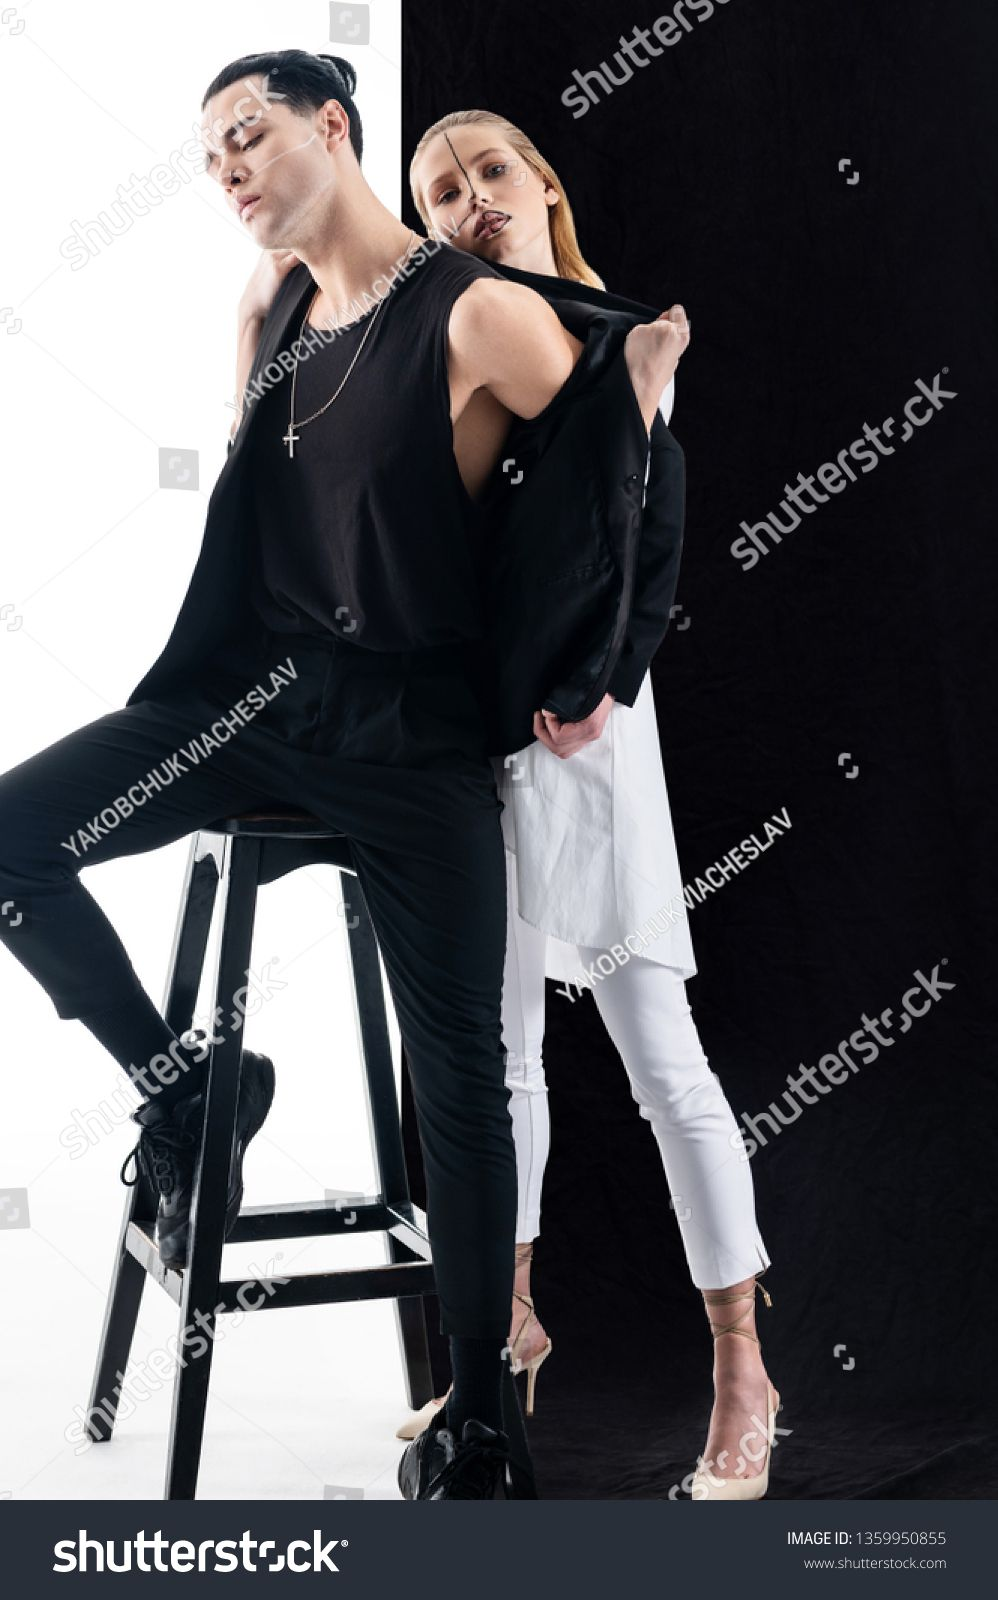 Yin or yang. Young models with amazing appearance working in yin and yang photo session ,